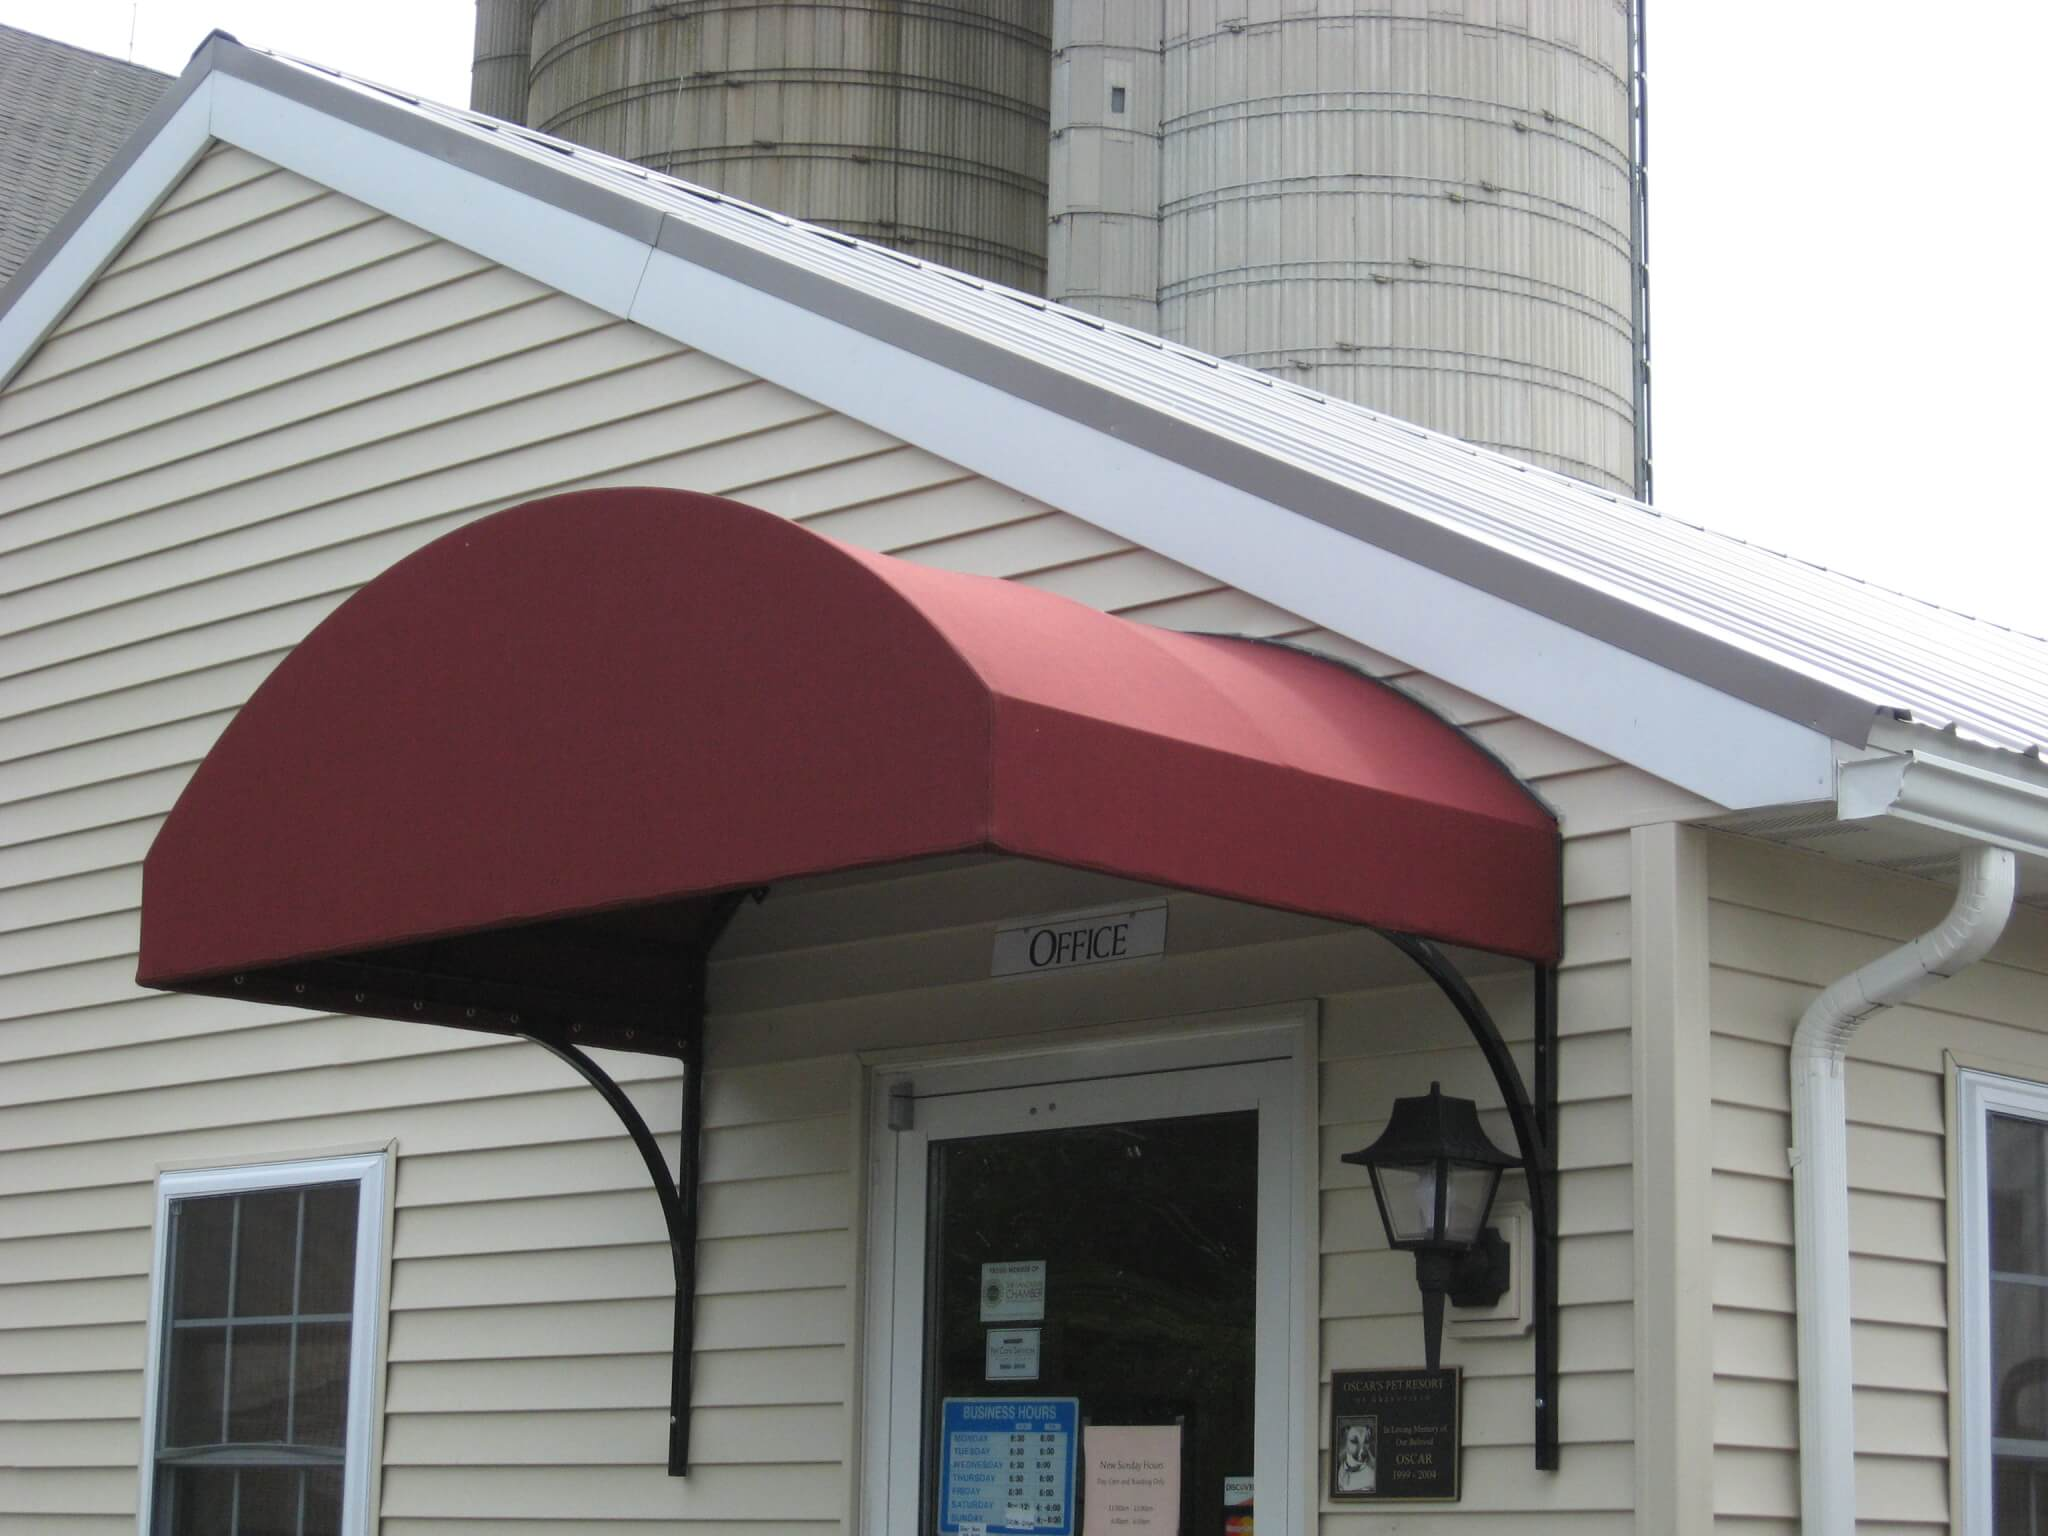 Sunbrella porch awning lititz pa kreider s canvas service inc - Arched Canvas Commercial Awning Installed Over A Door